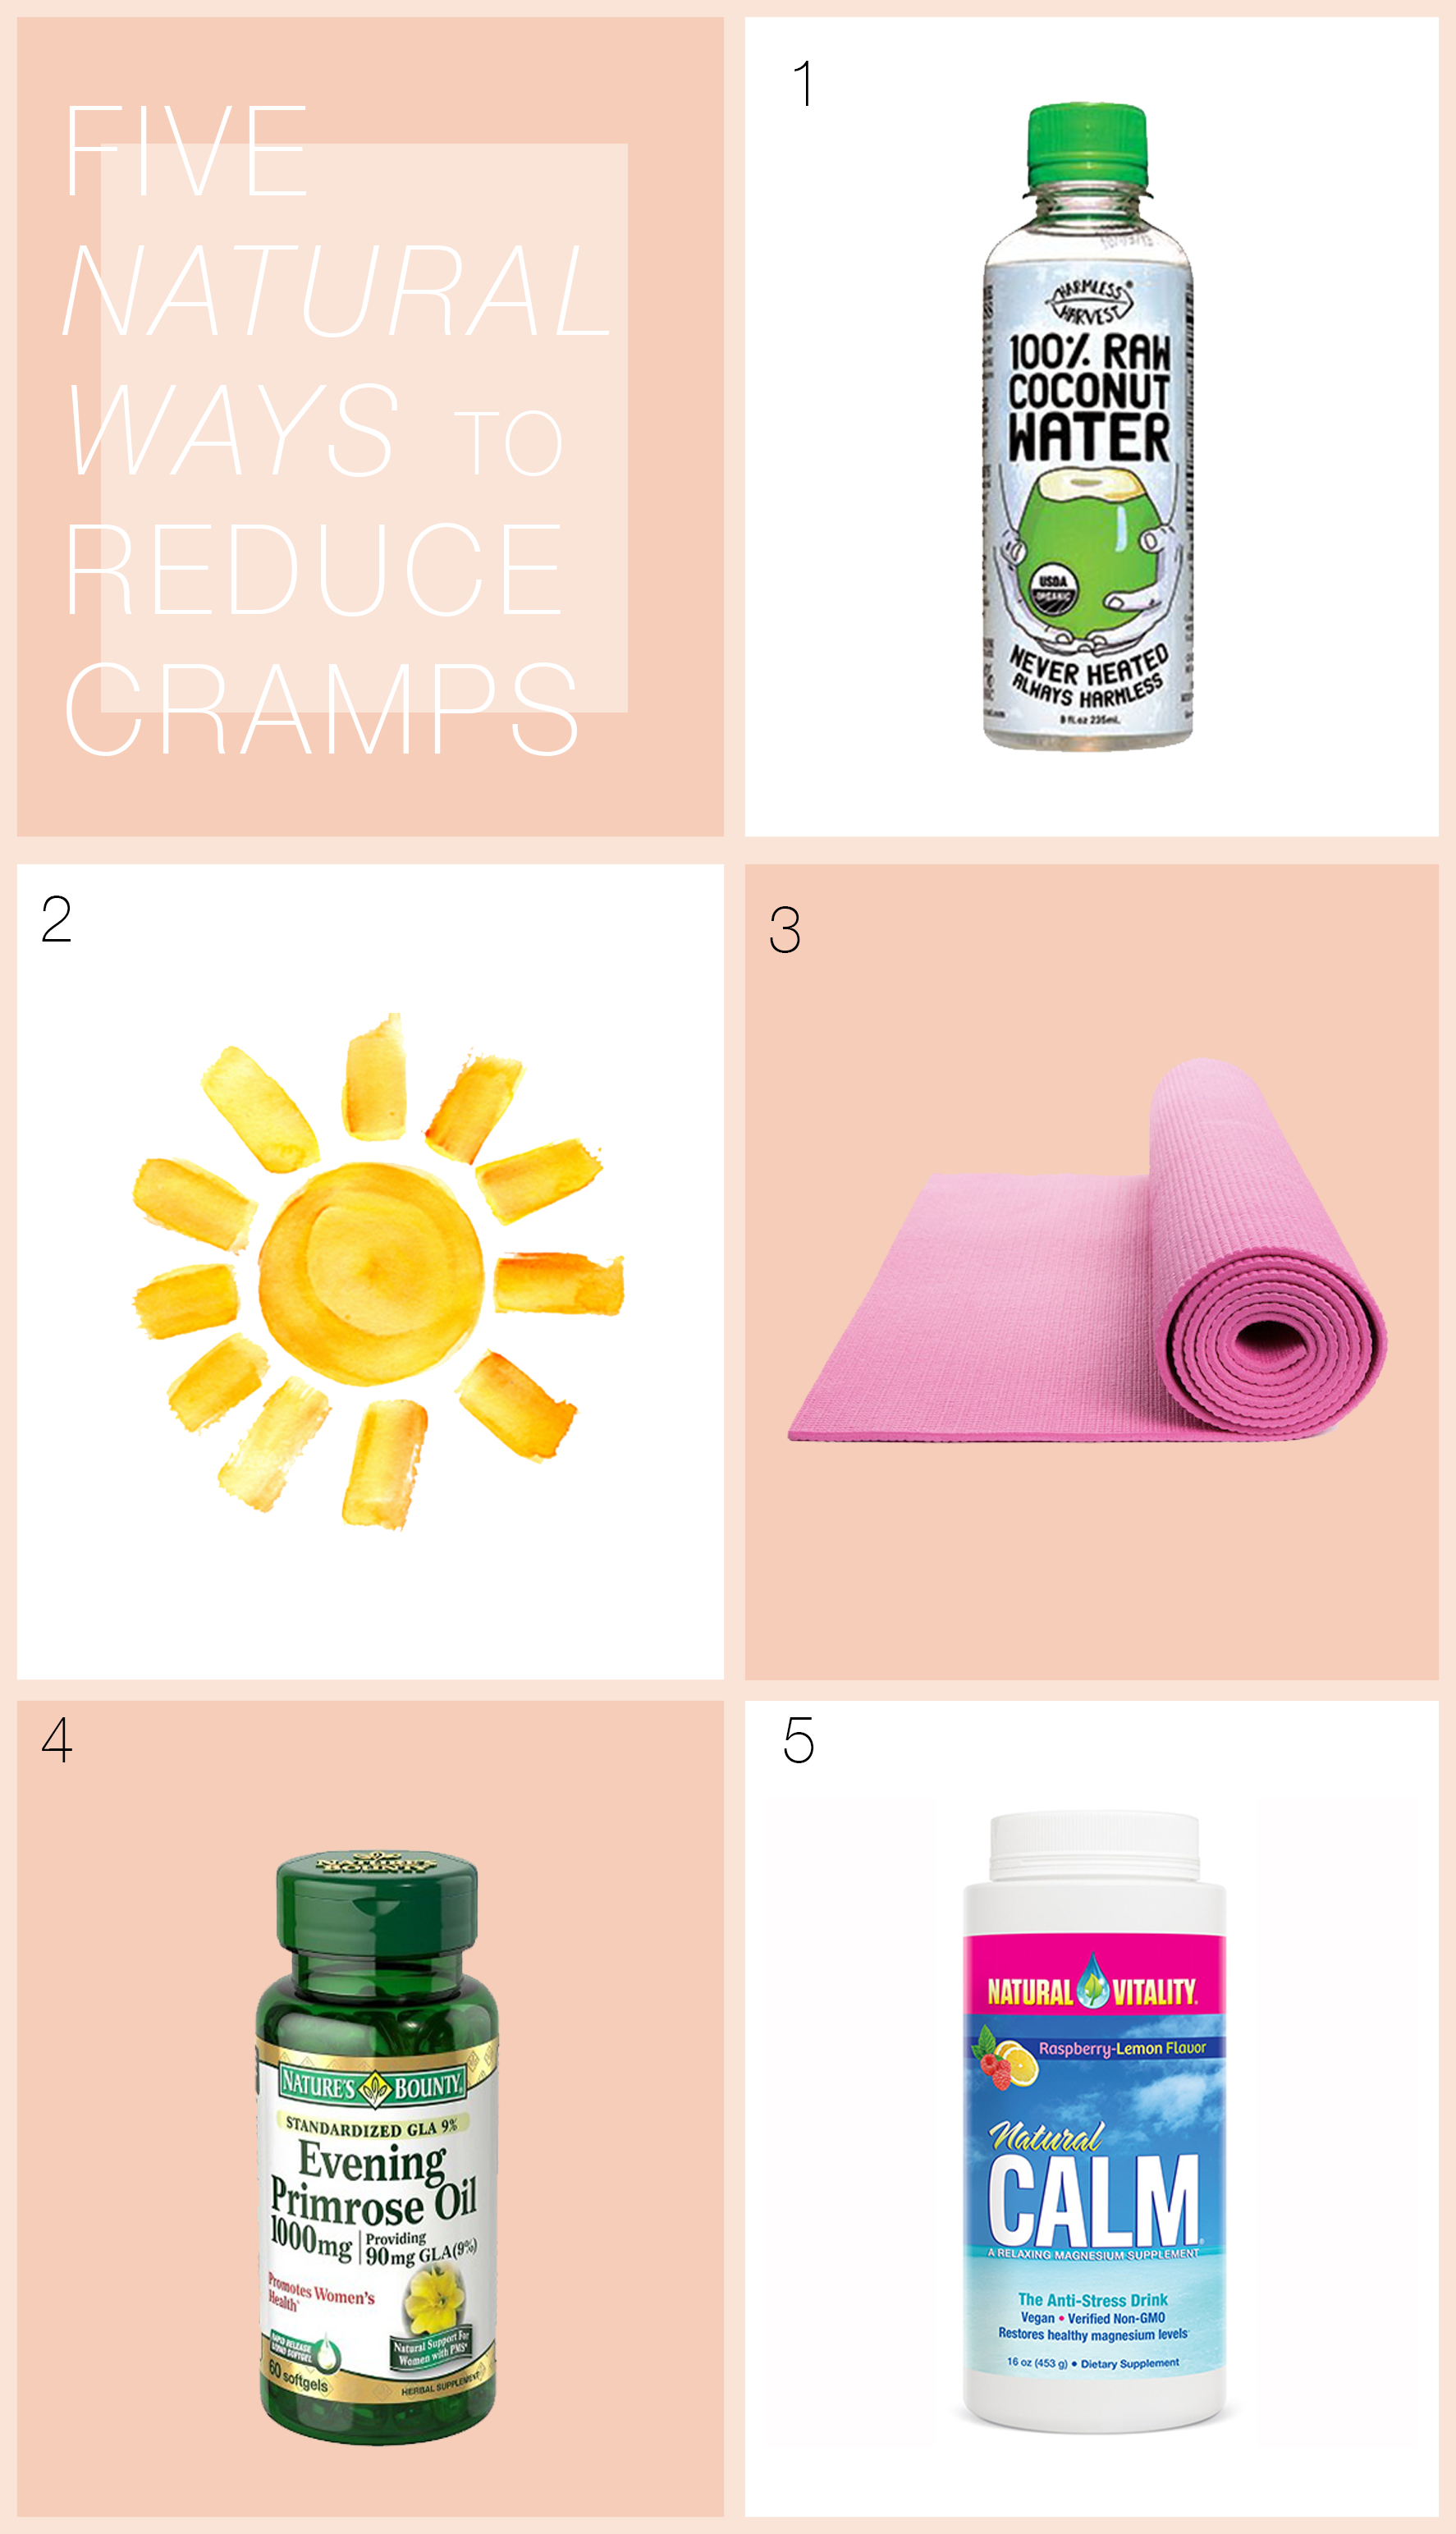 Five Natural Ways to Reduce Cramps via allthedelights.com